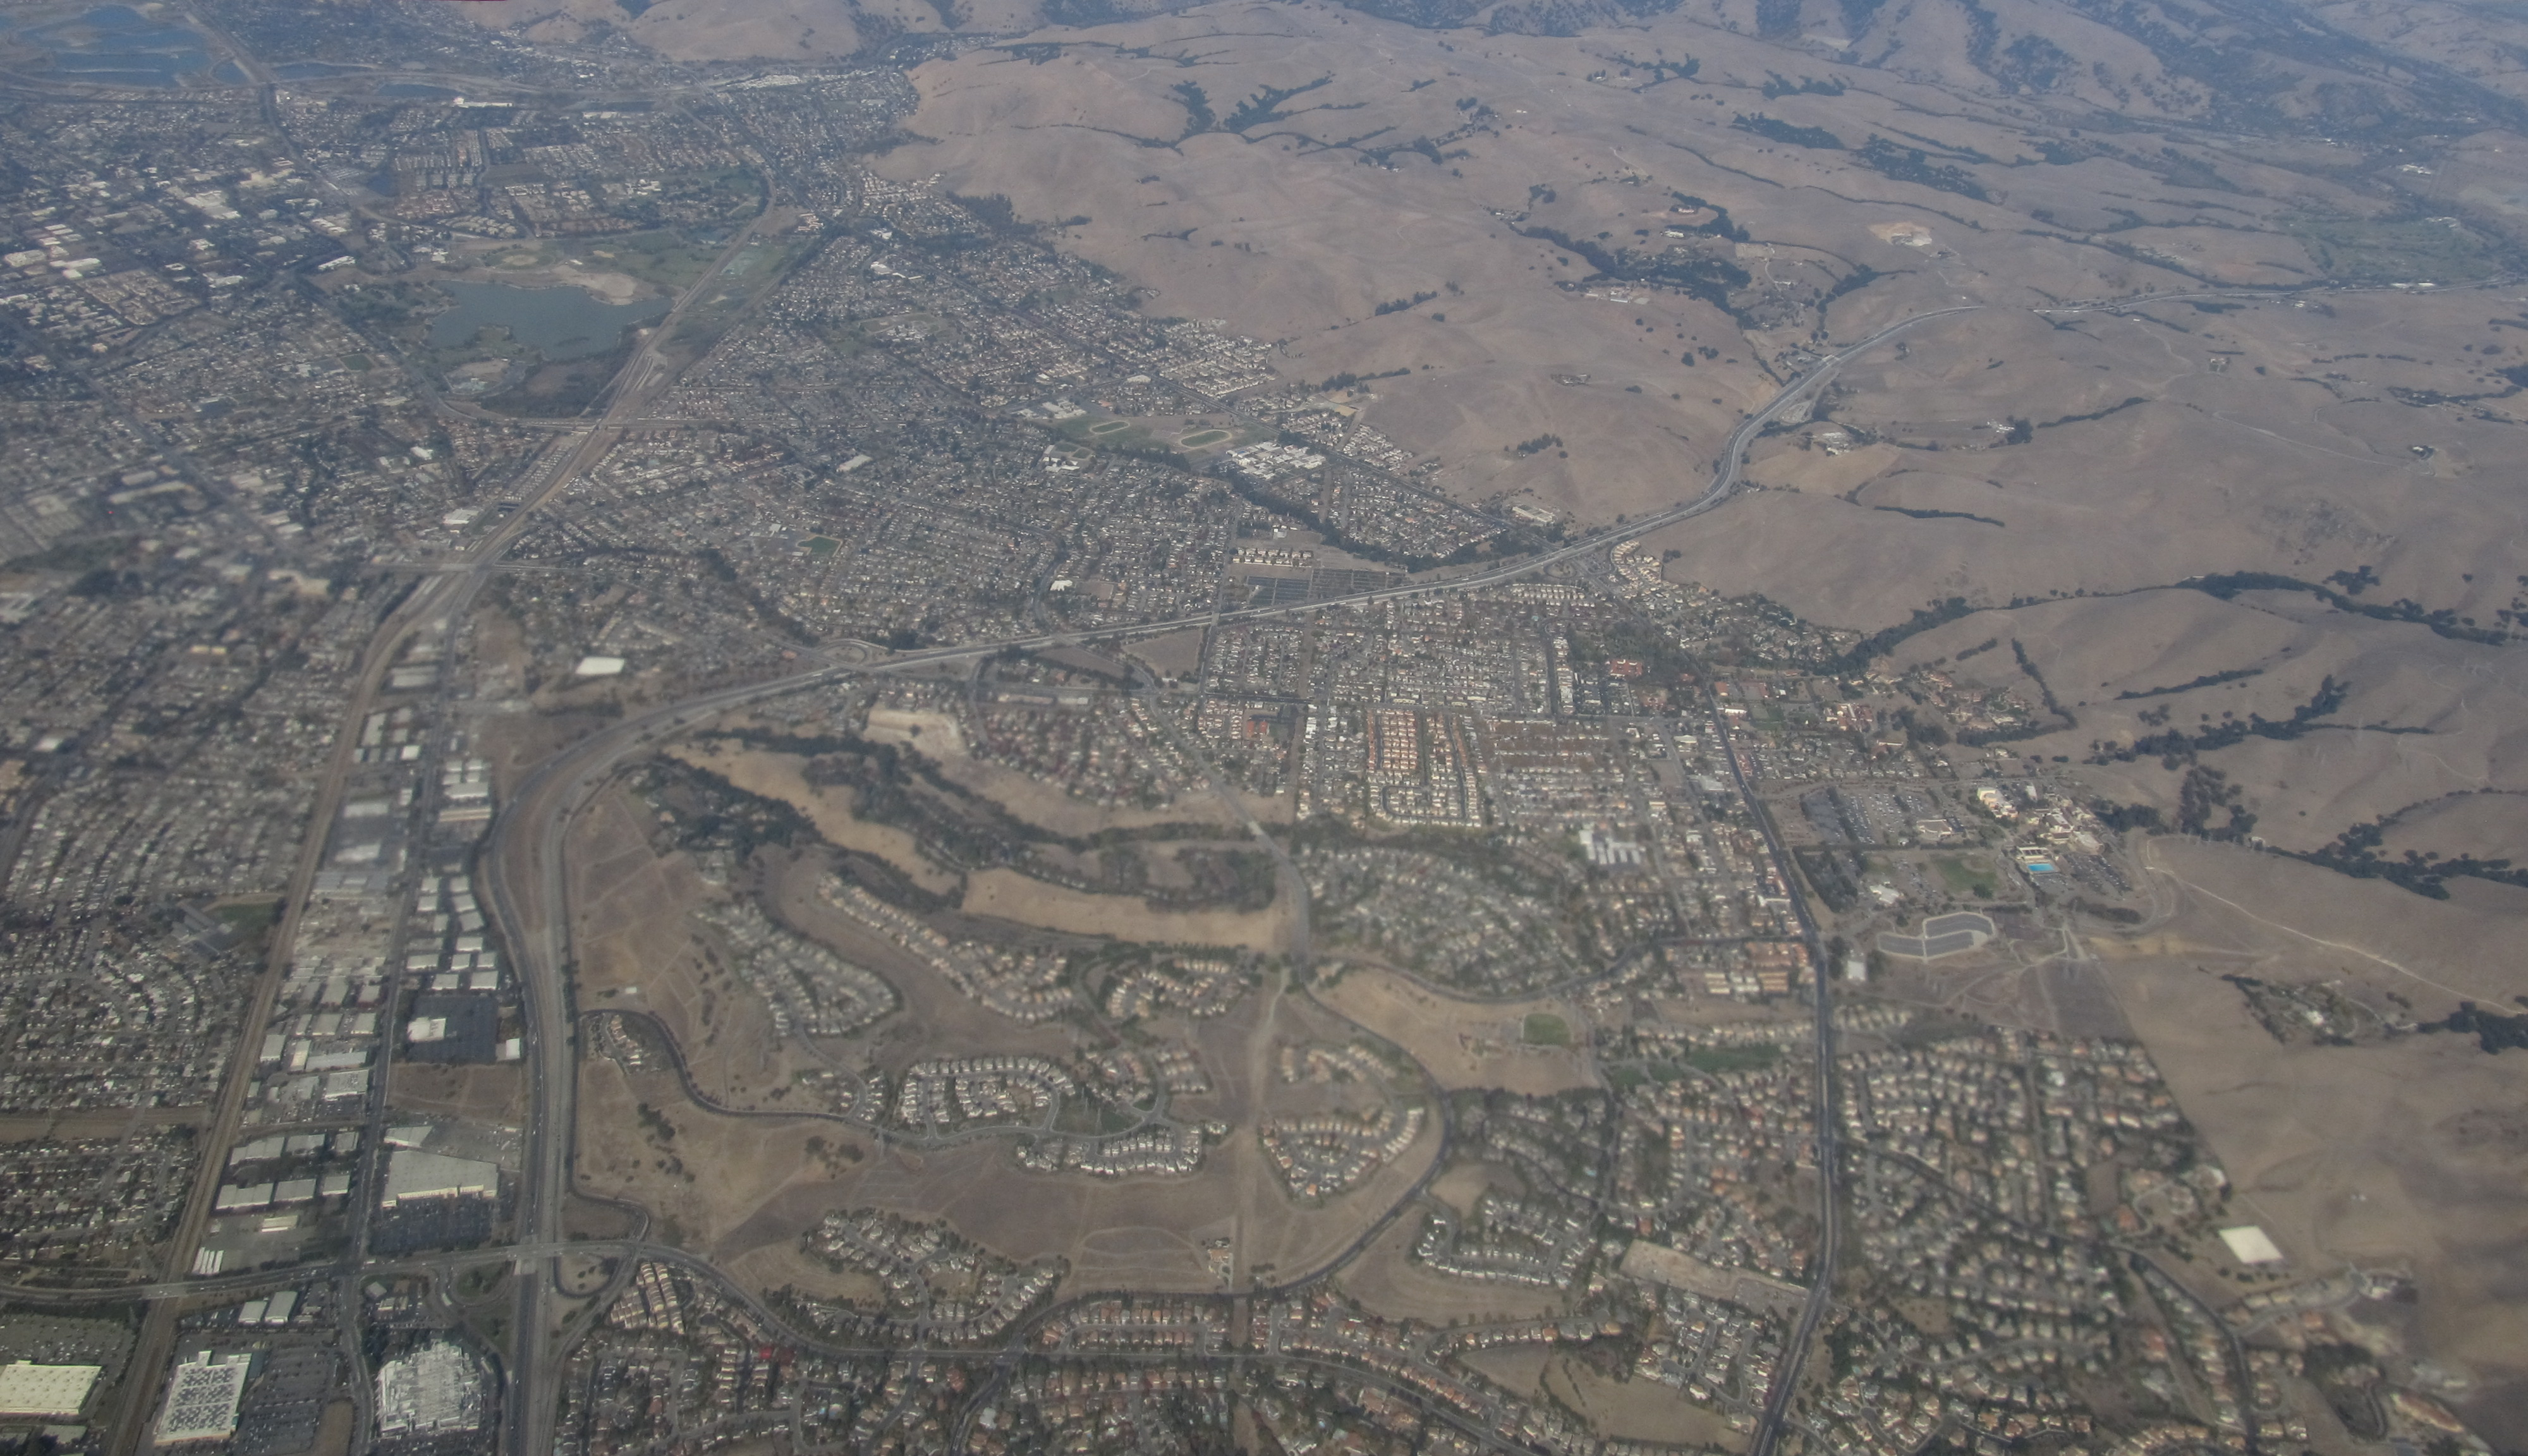 Fremont CA Aerial View